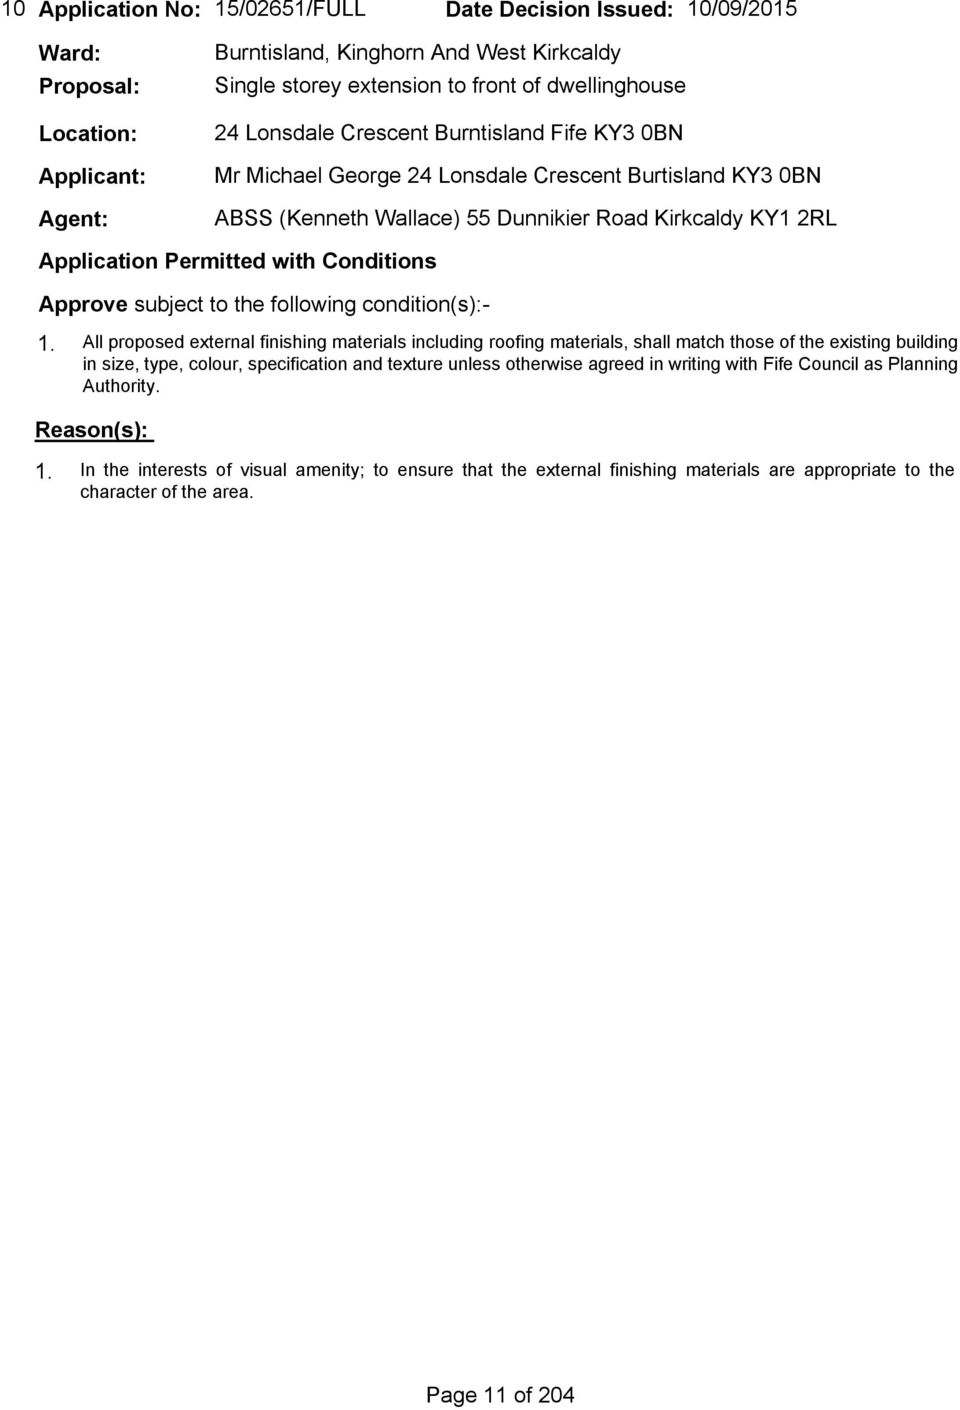 APPLICATIONS DEALT WITH BY THE HEAD OF SERVICE UNDER SCHEME